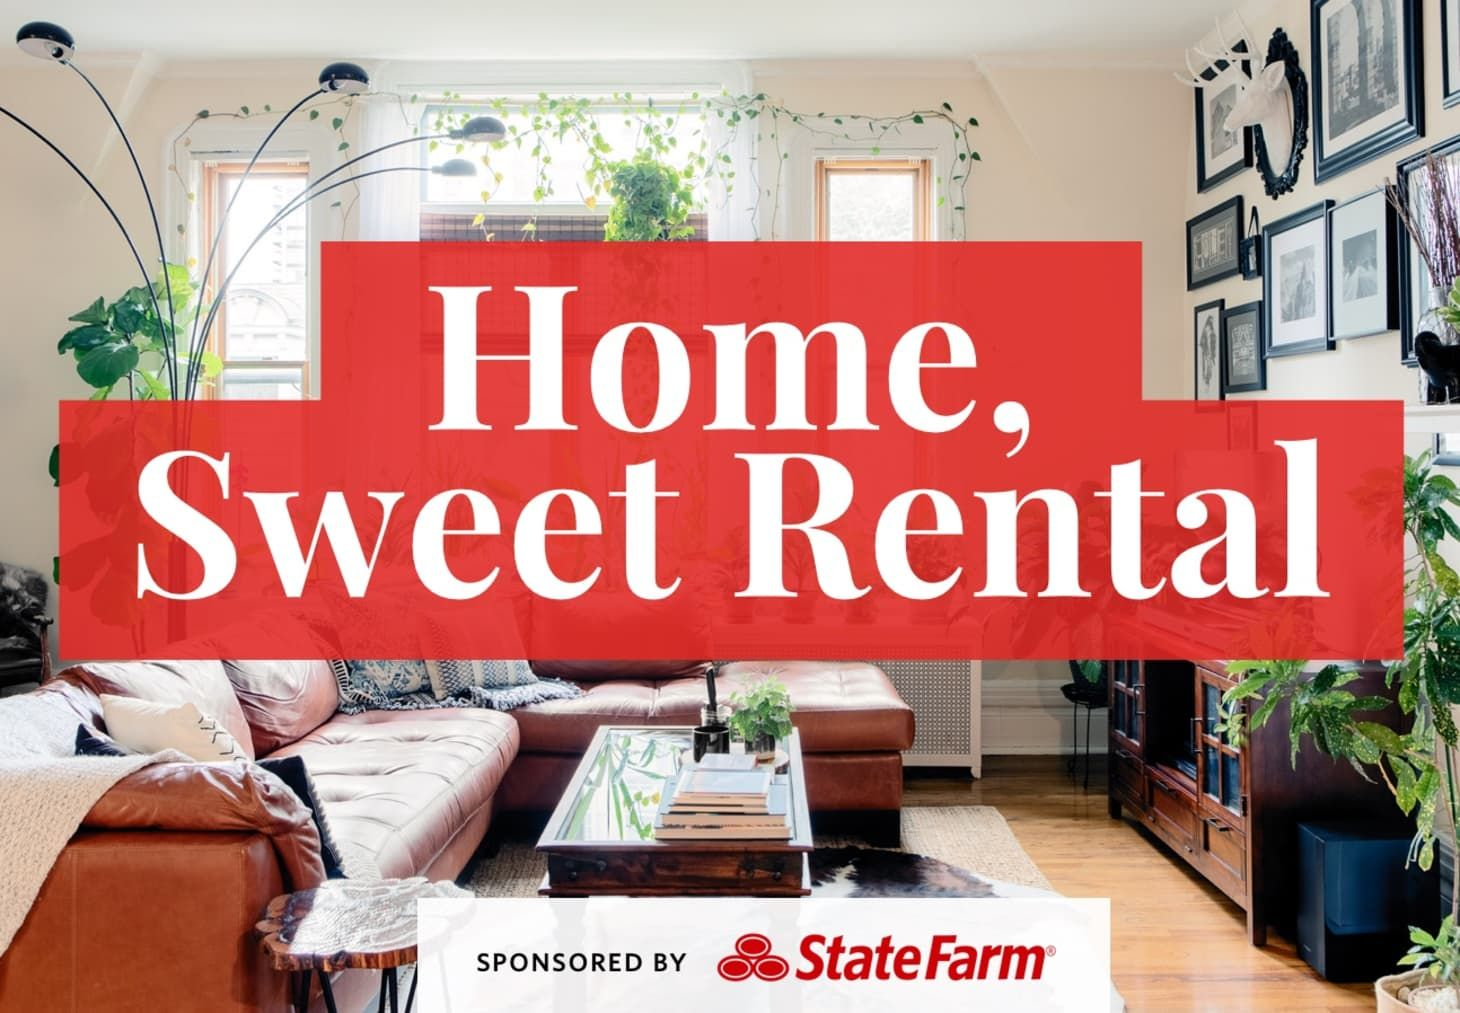 Homemadehome sweet rental state farm apartment therapy